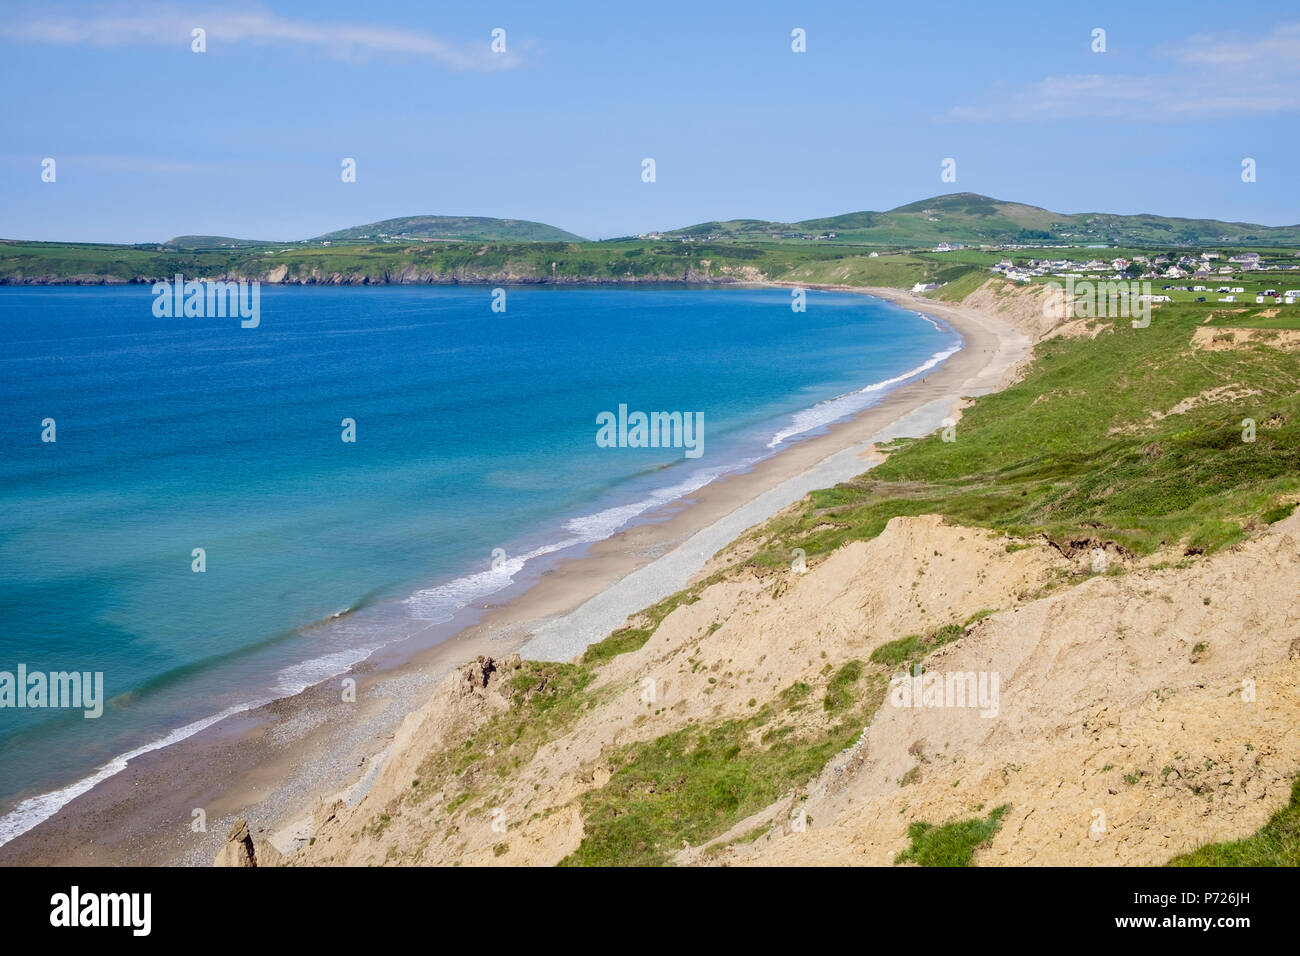 Aberdaron In North Wales Stock Photos & Aberdaron In North Wales ...